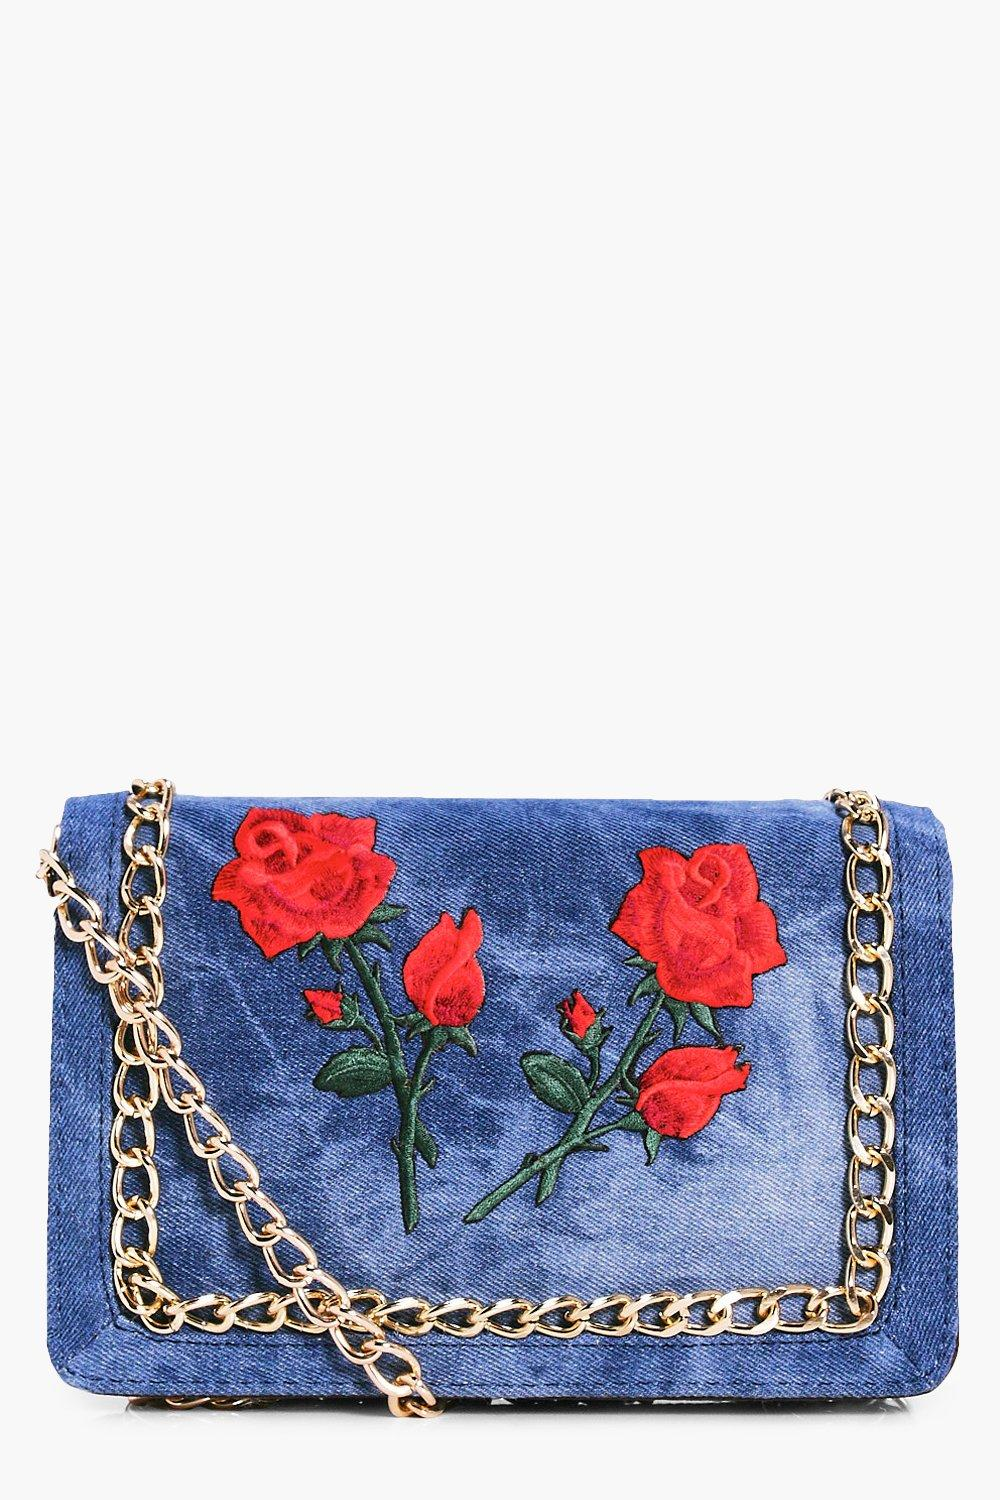 Floral Patch Denim Cross Body Bag - denim - Bella